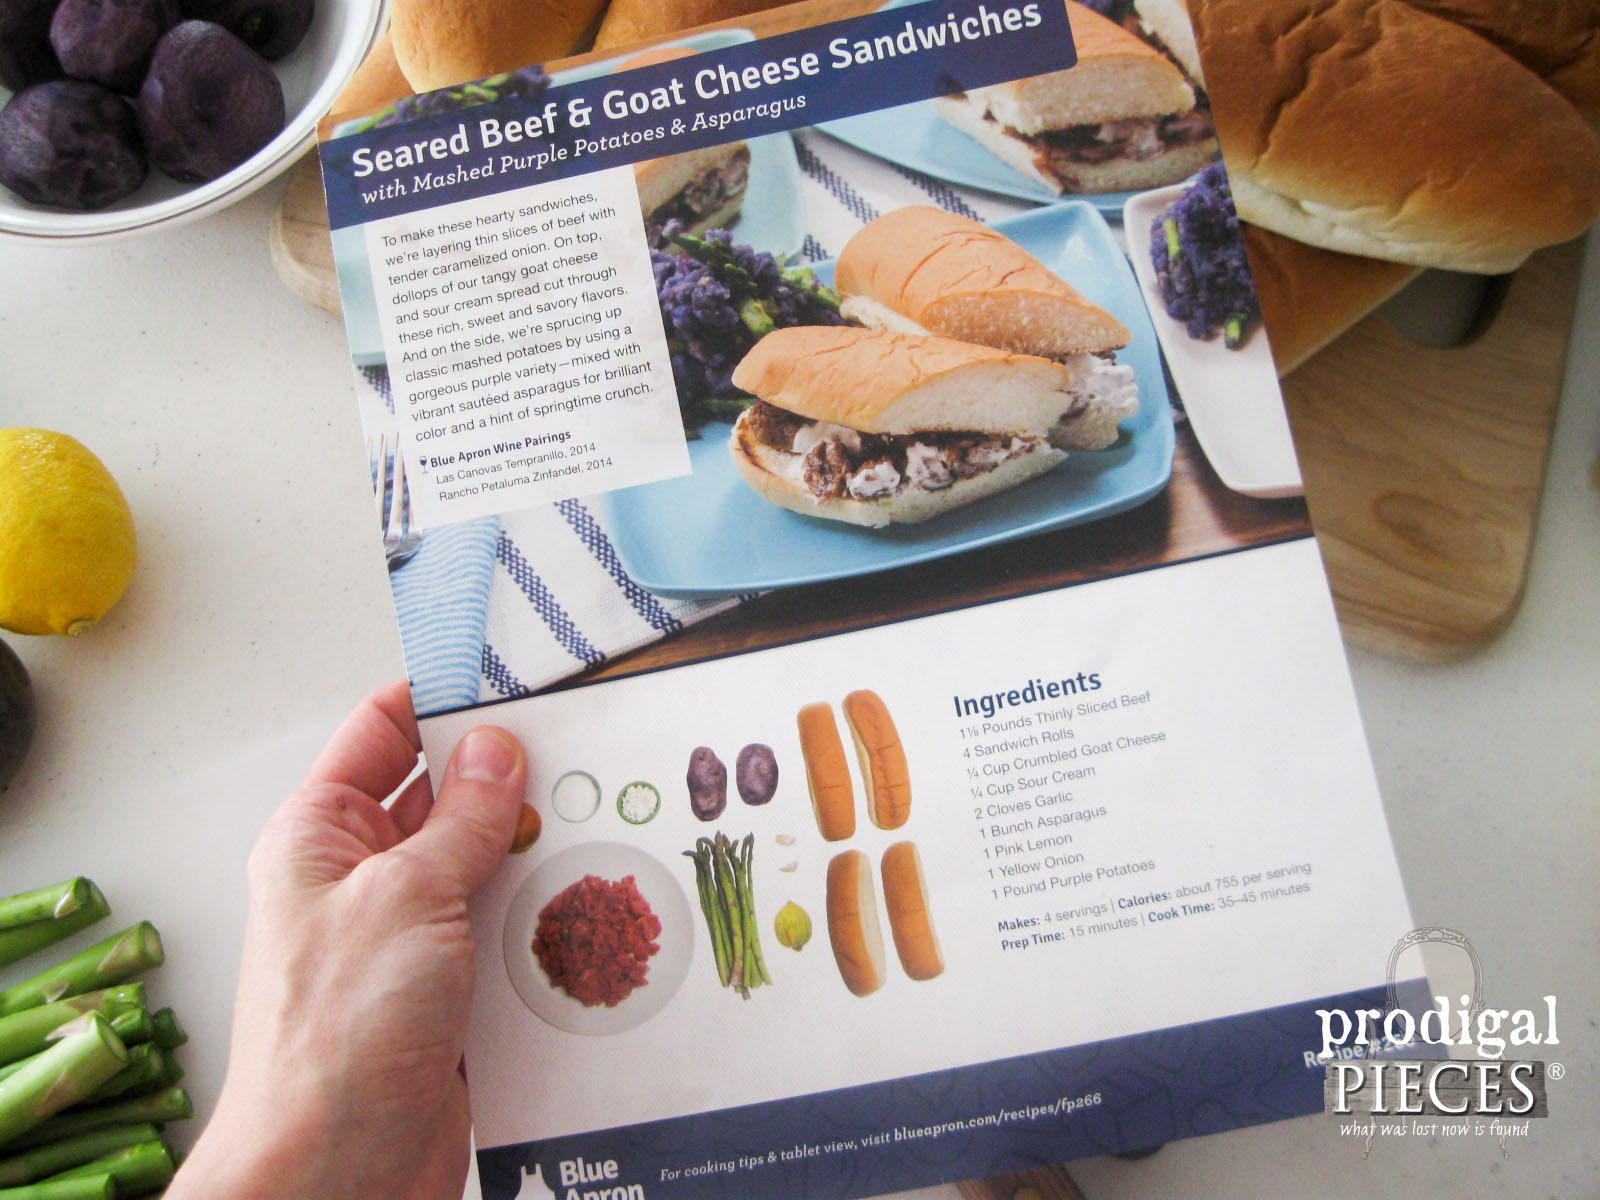 Blue Apron Recipe Card | Prodigal Pieces | www.prodigalpieces.com